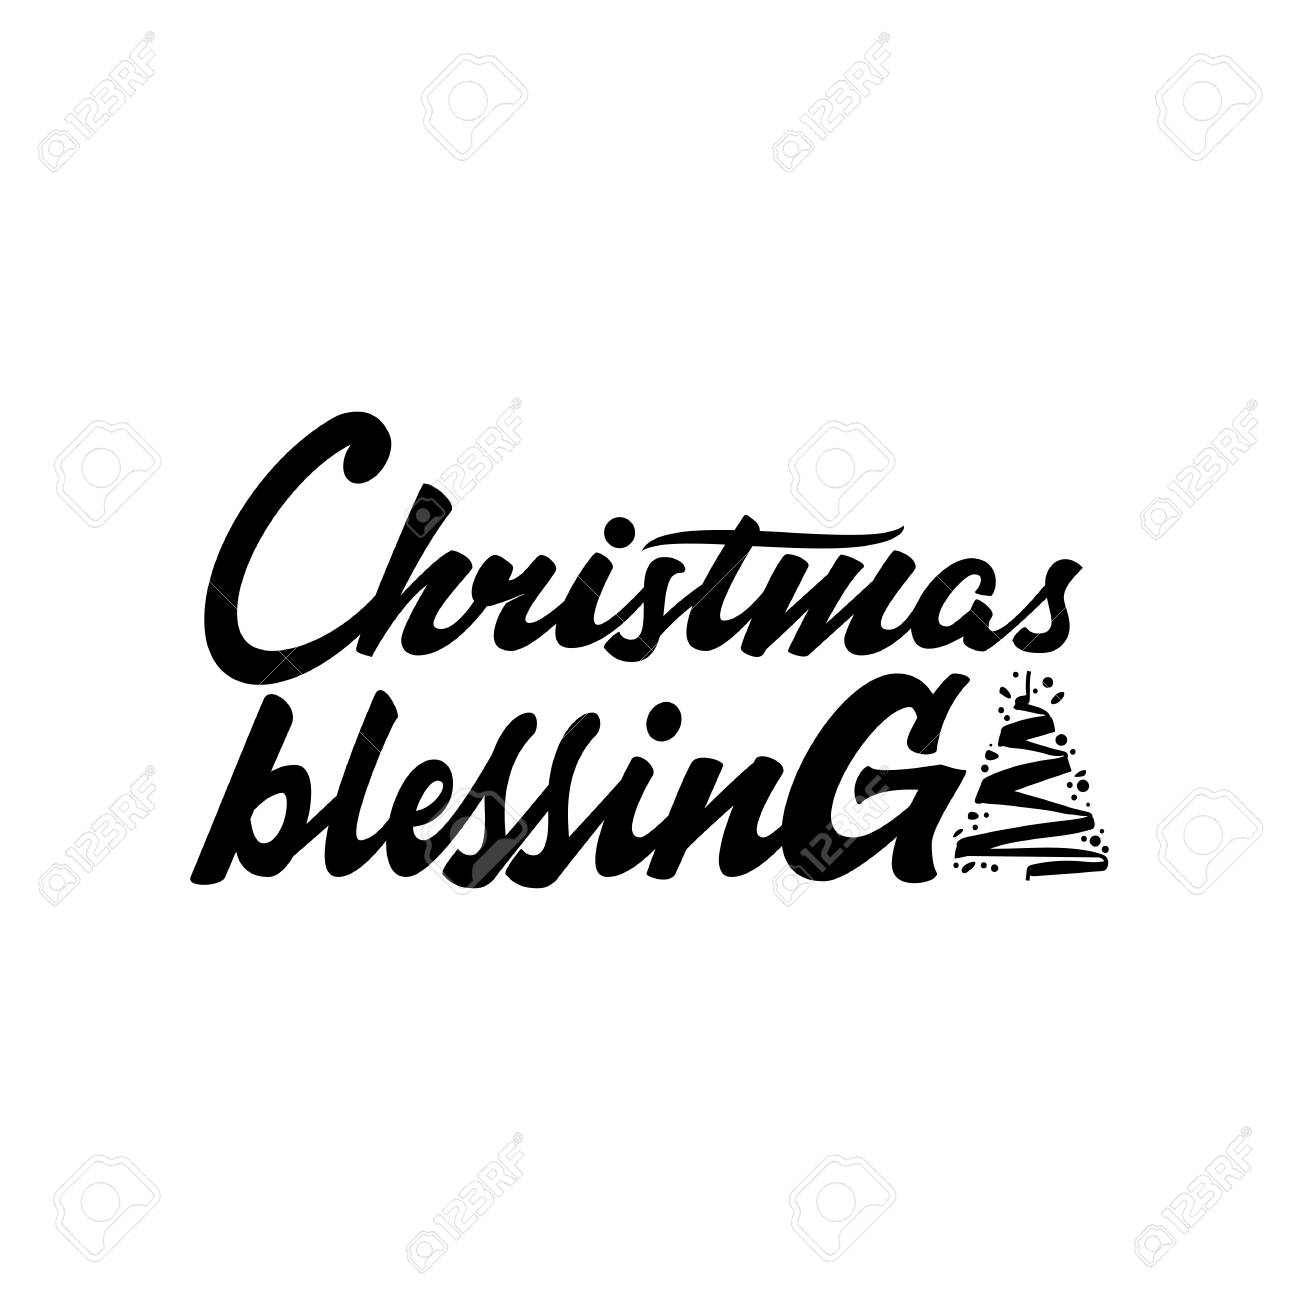 Christmas Blessings Quotes.Christmas Blessings Hand Drawn Calligraphy Lettering Inspirational